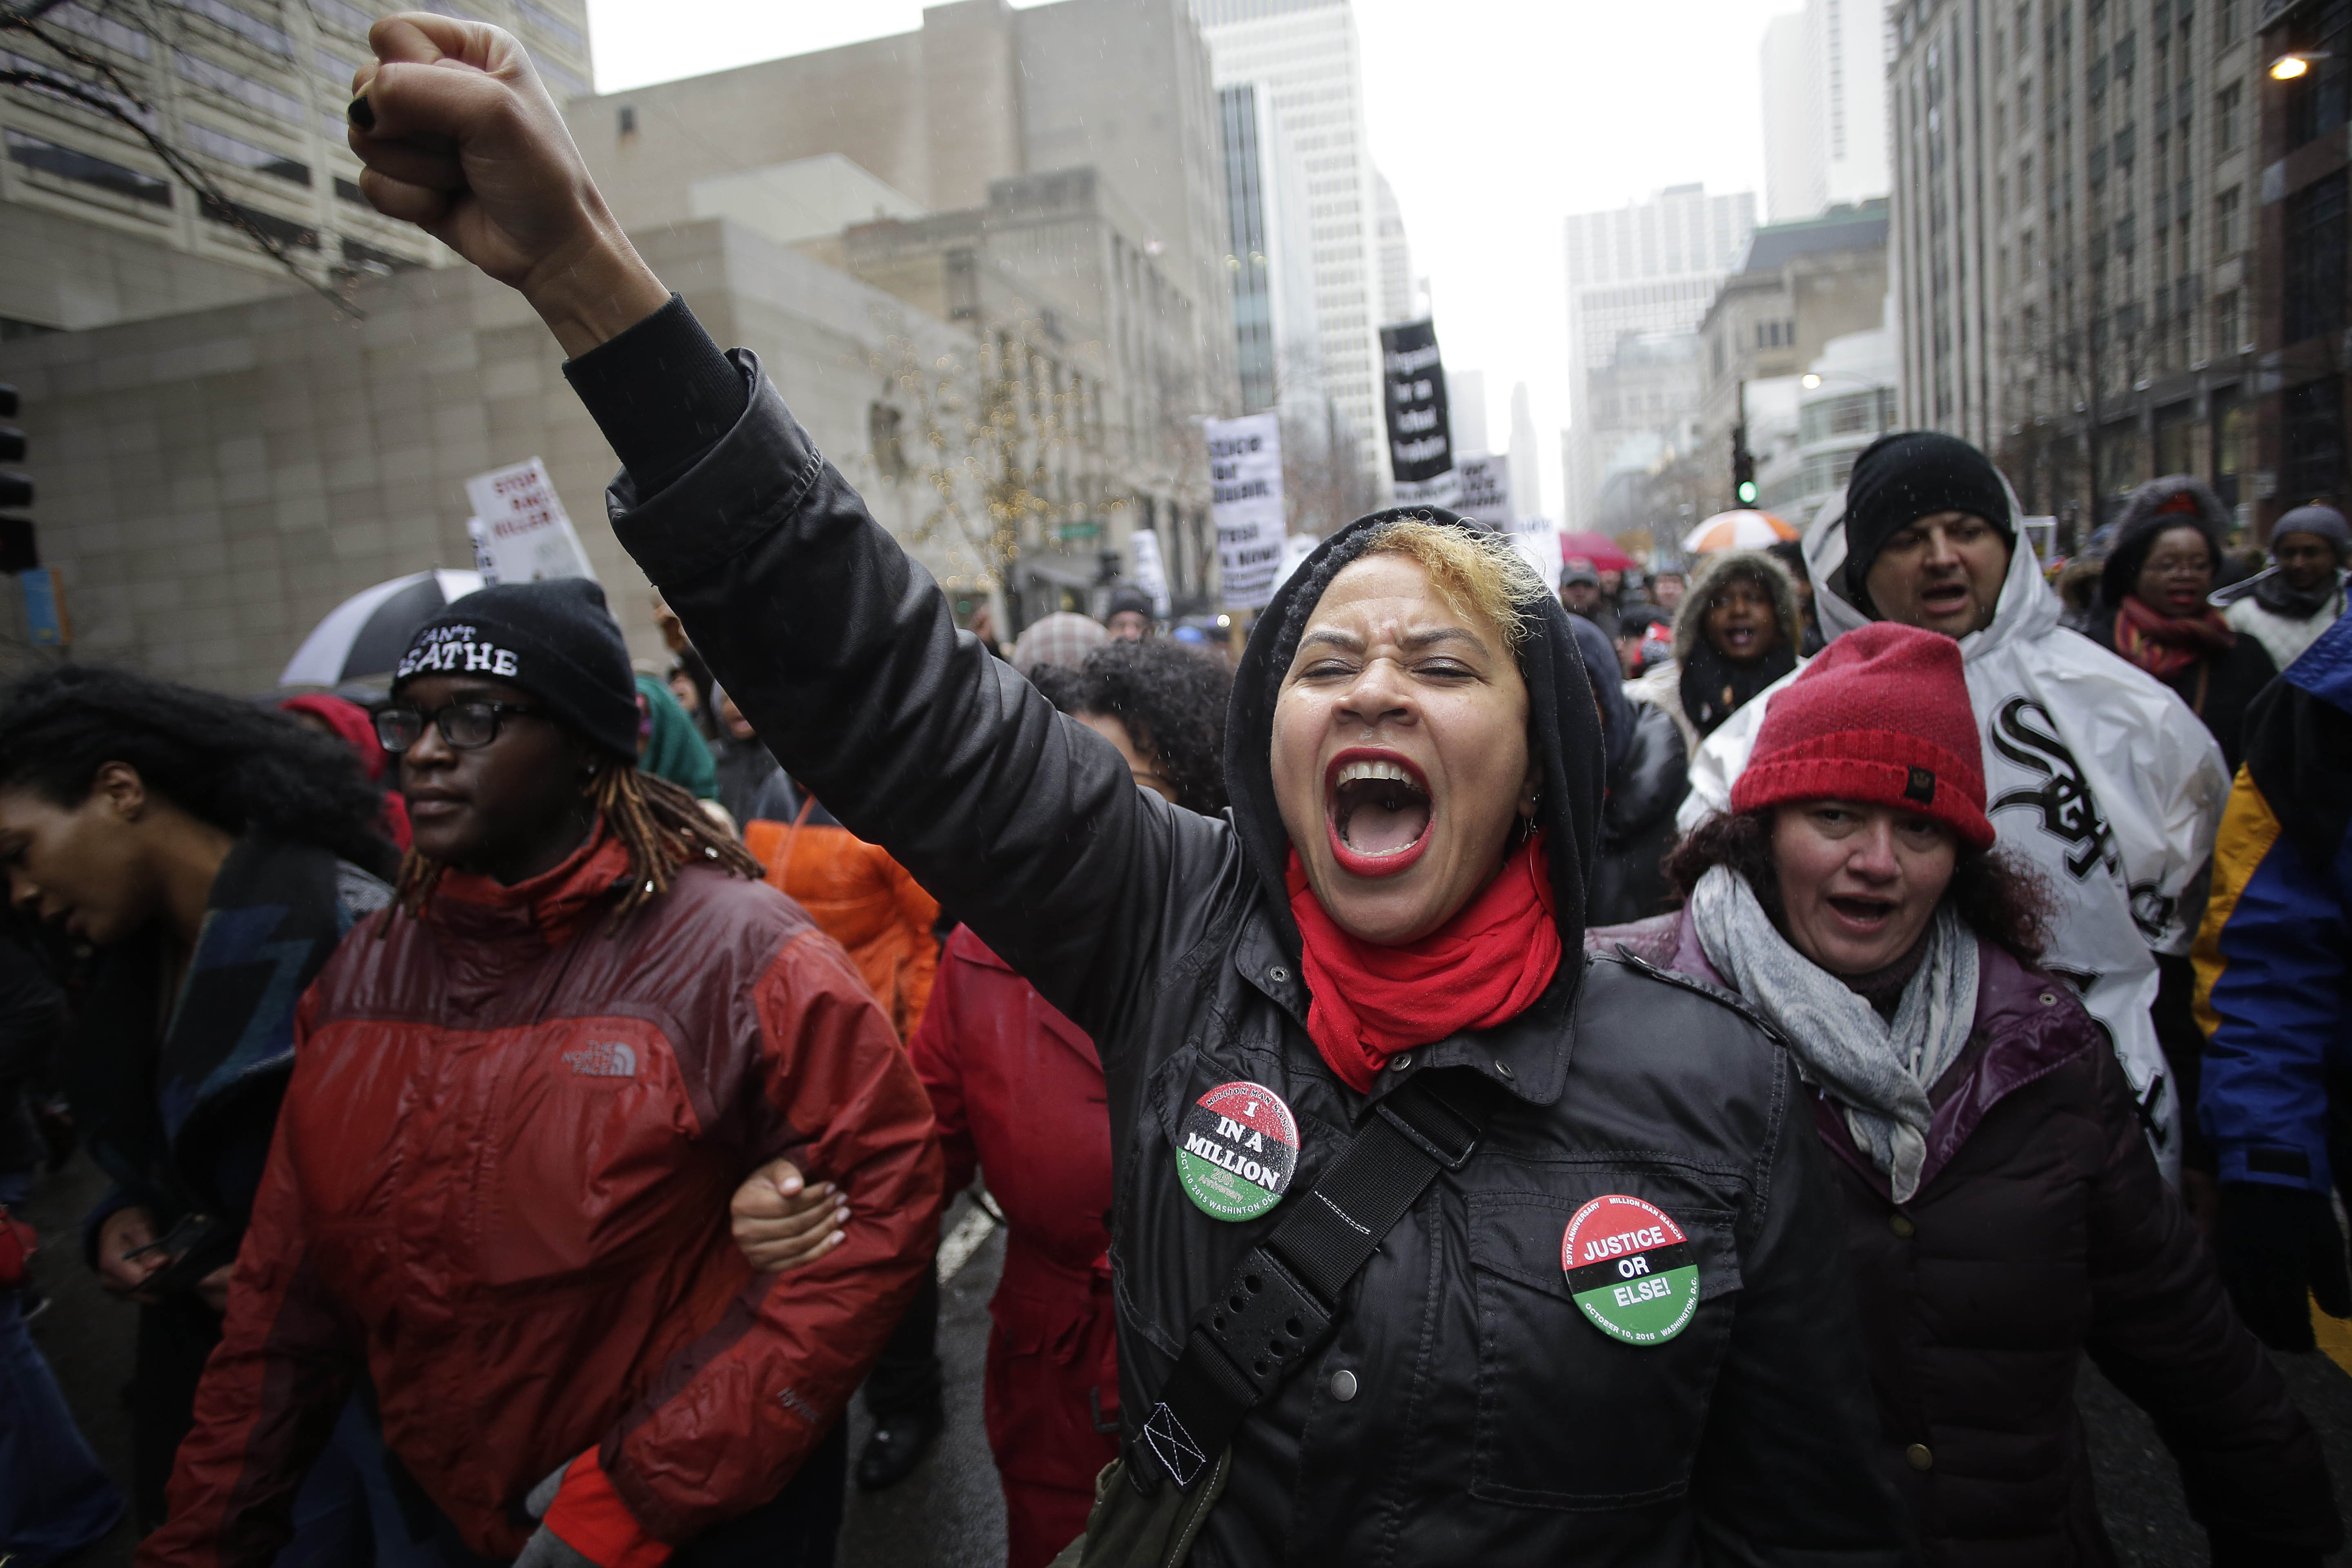 Demonstrators protest the shooting of Laquan McDonald along the Magnificent Mile in Chicago on Nov. 27, 2015.